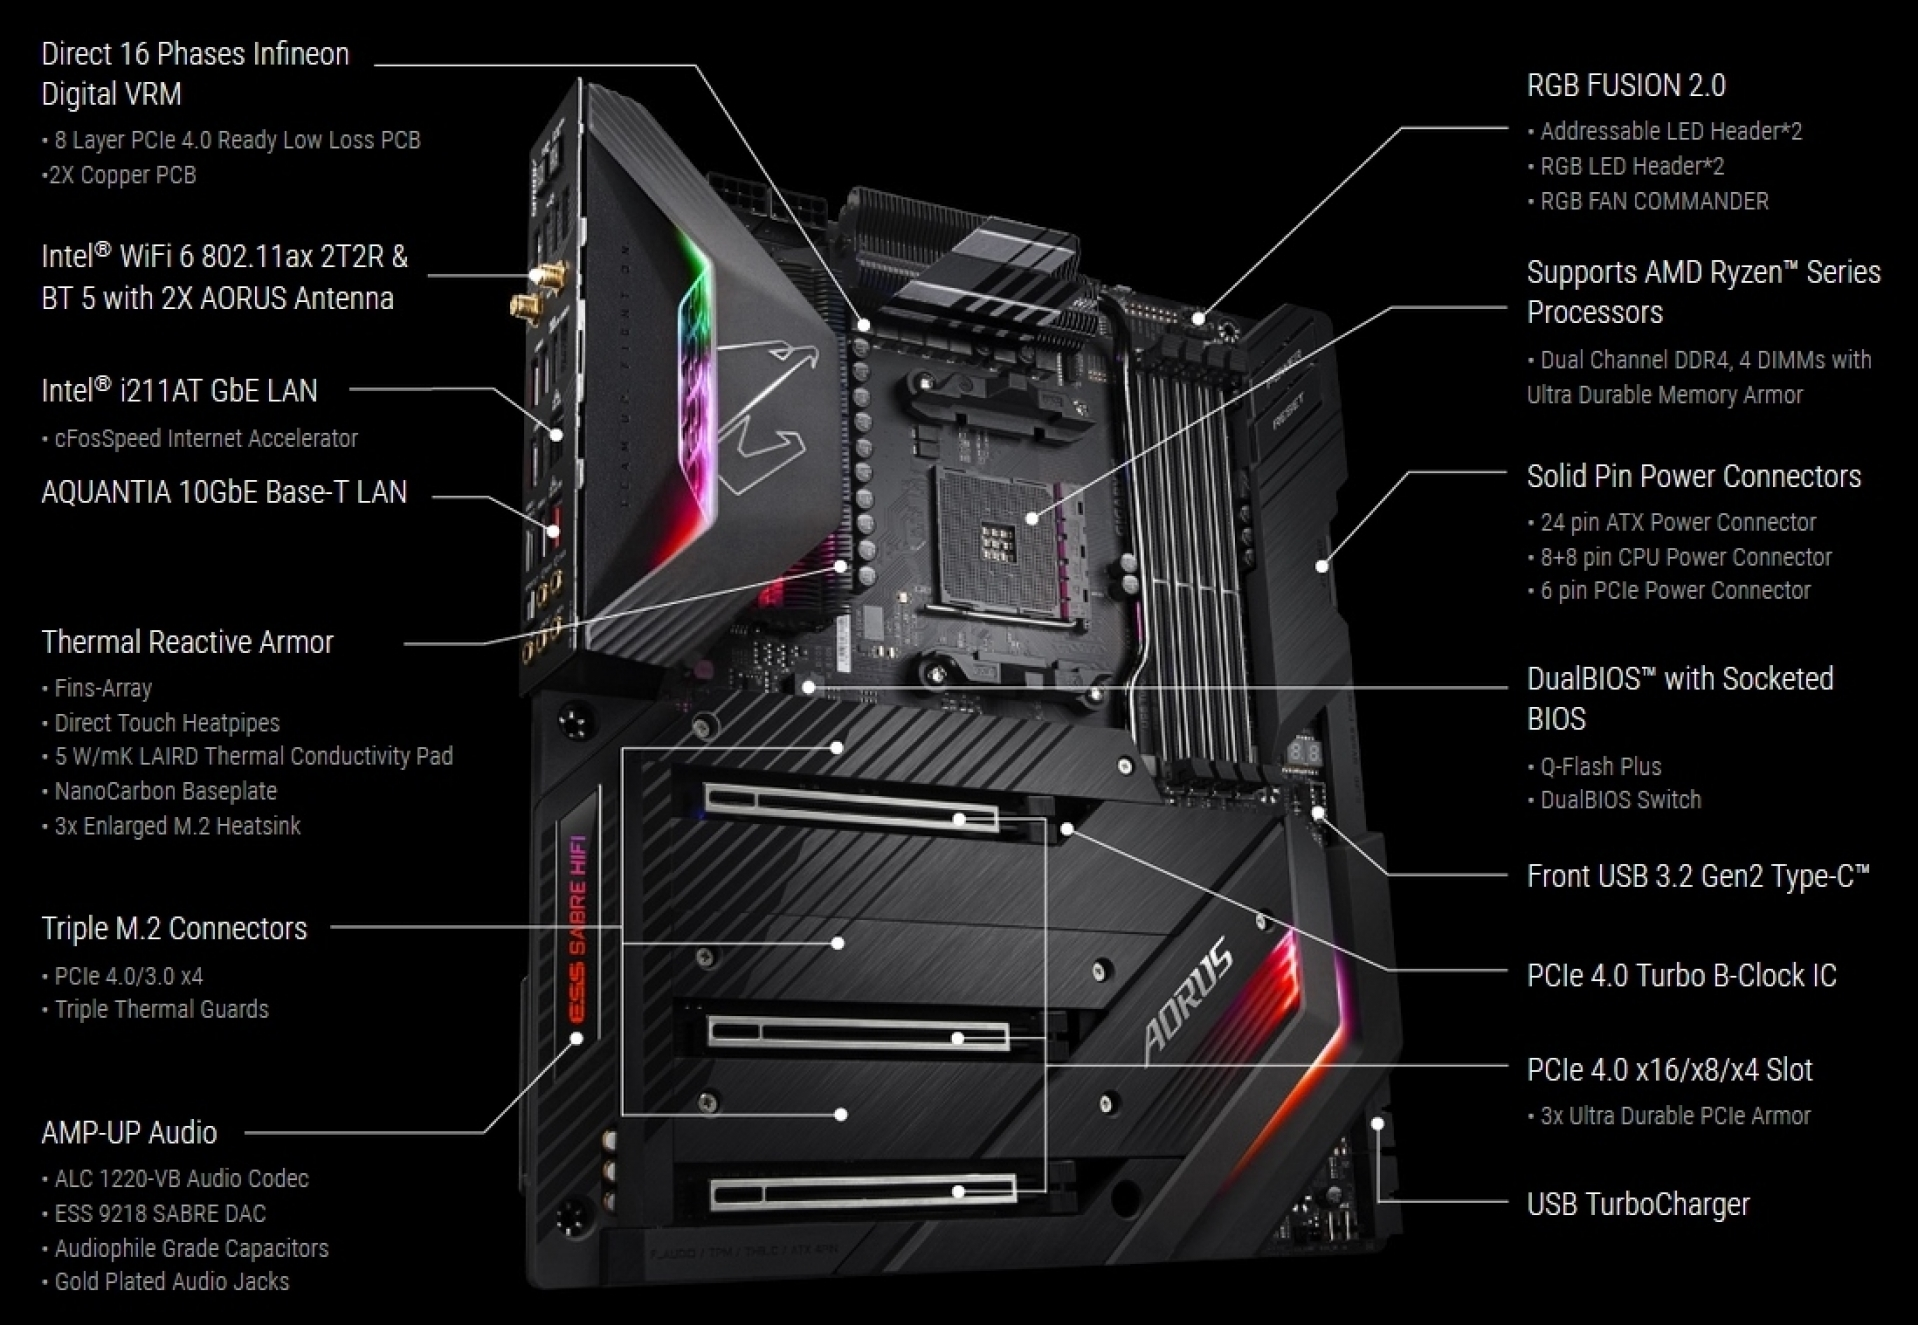 Gigabyte X570 Aorus Xtreme Preview | Introduction and Technical